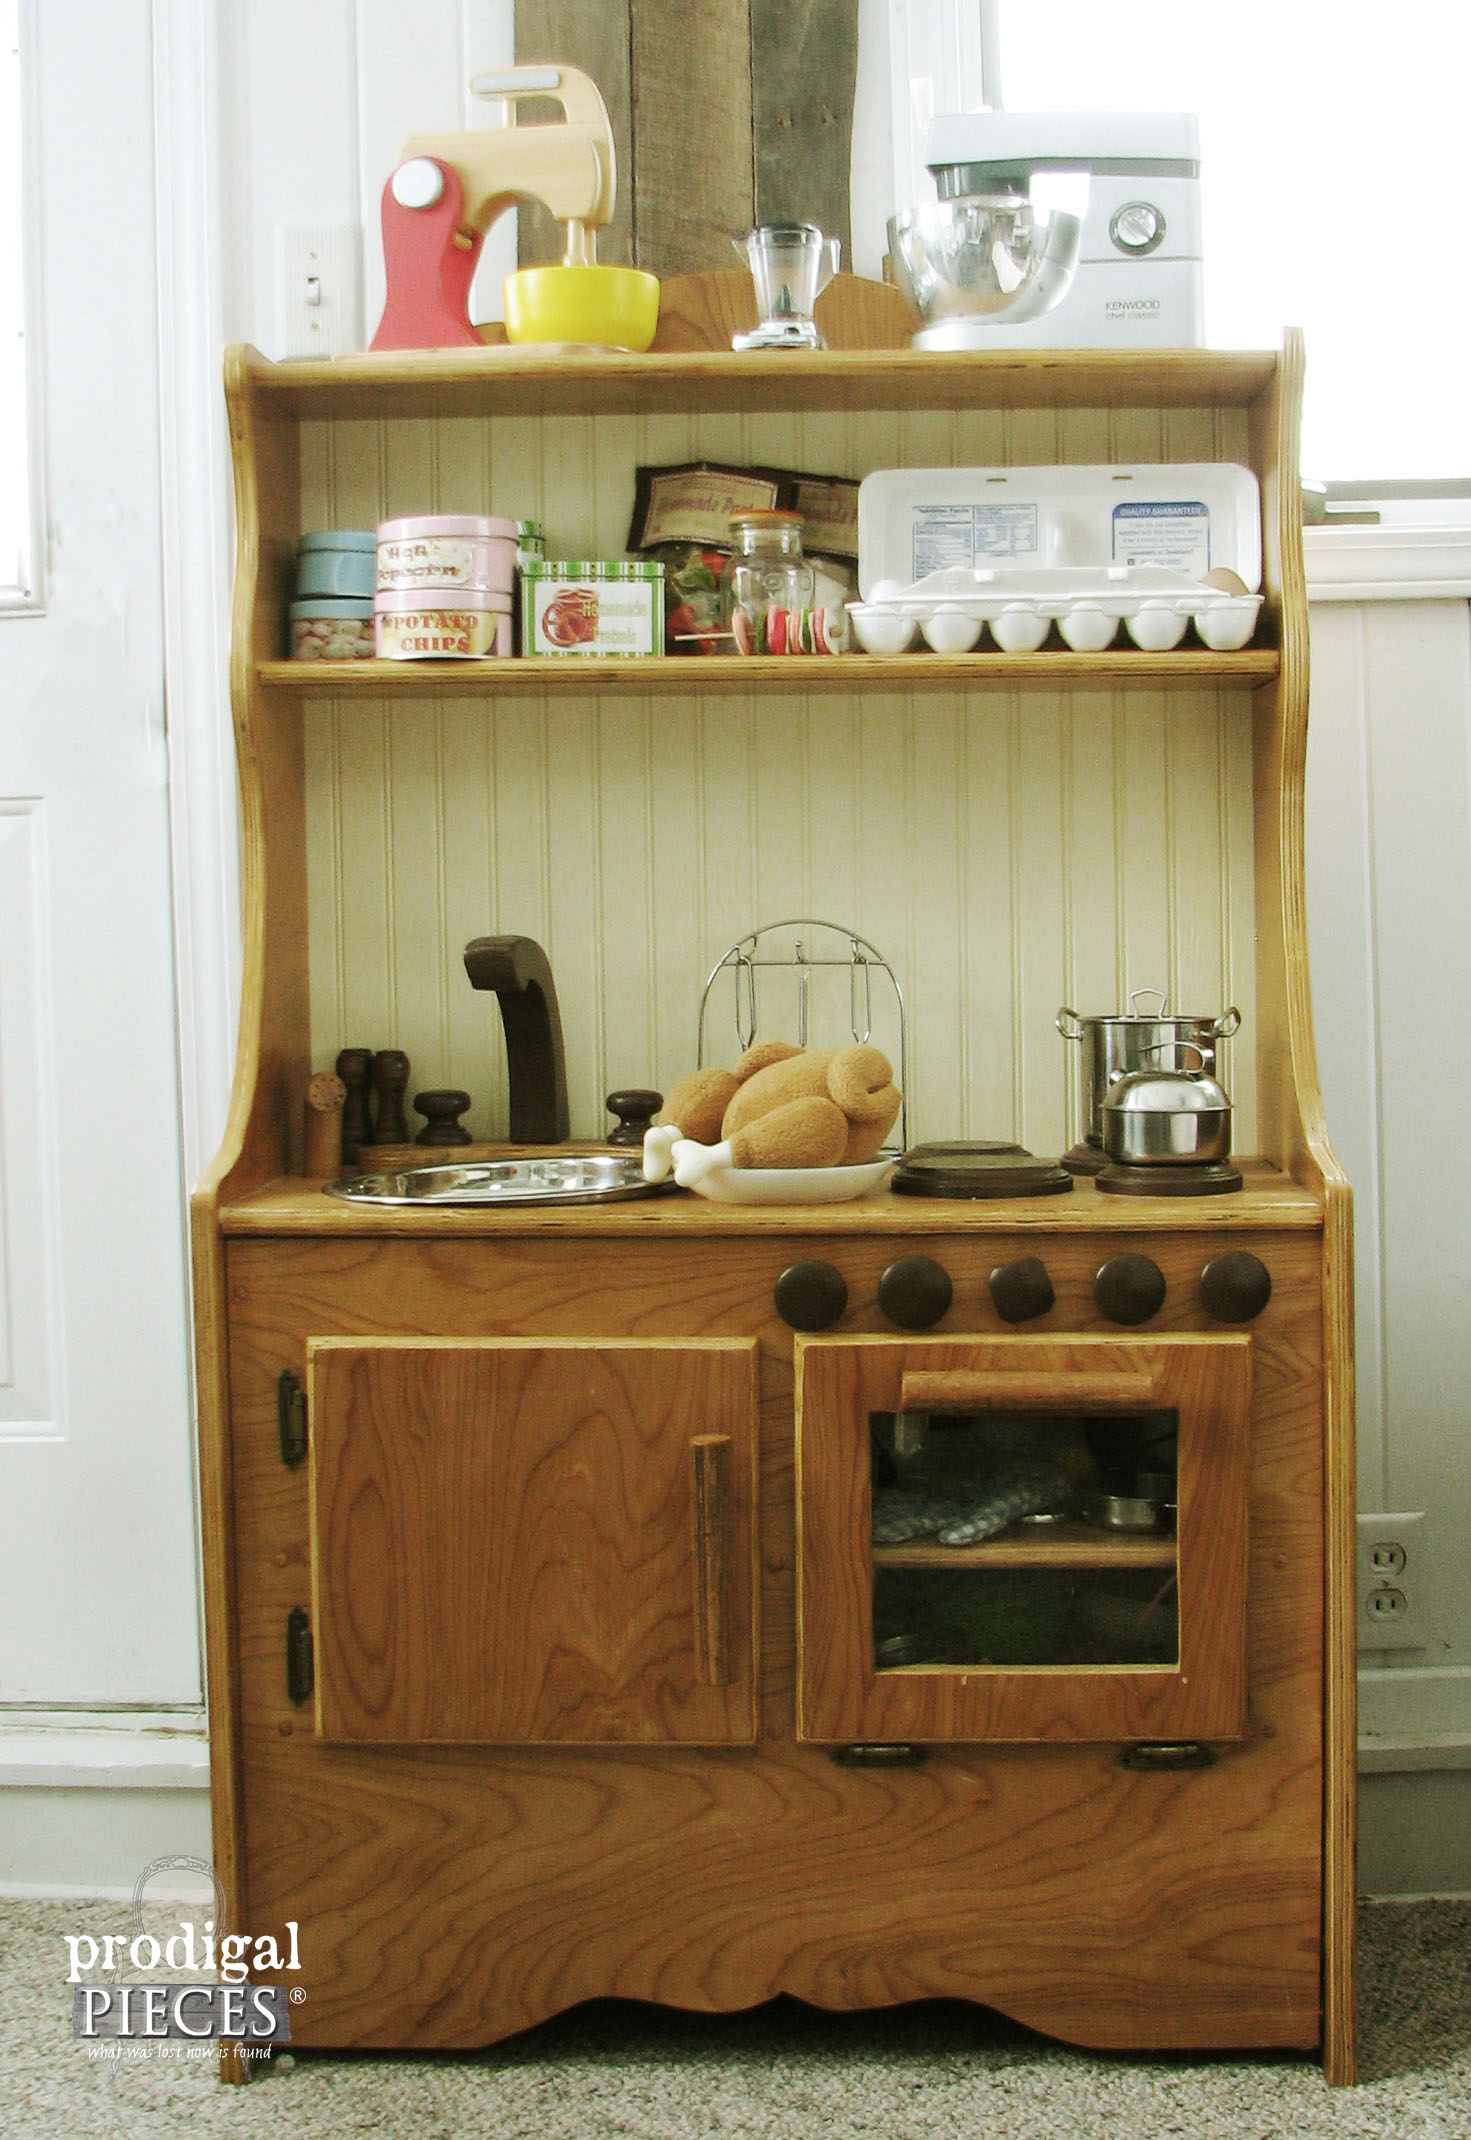 Handmade Wooden Toy Pretend Play Kitchen by Prodigal Pieces | www.prodigalpieces.com